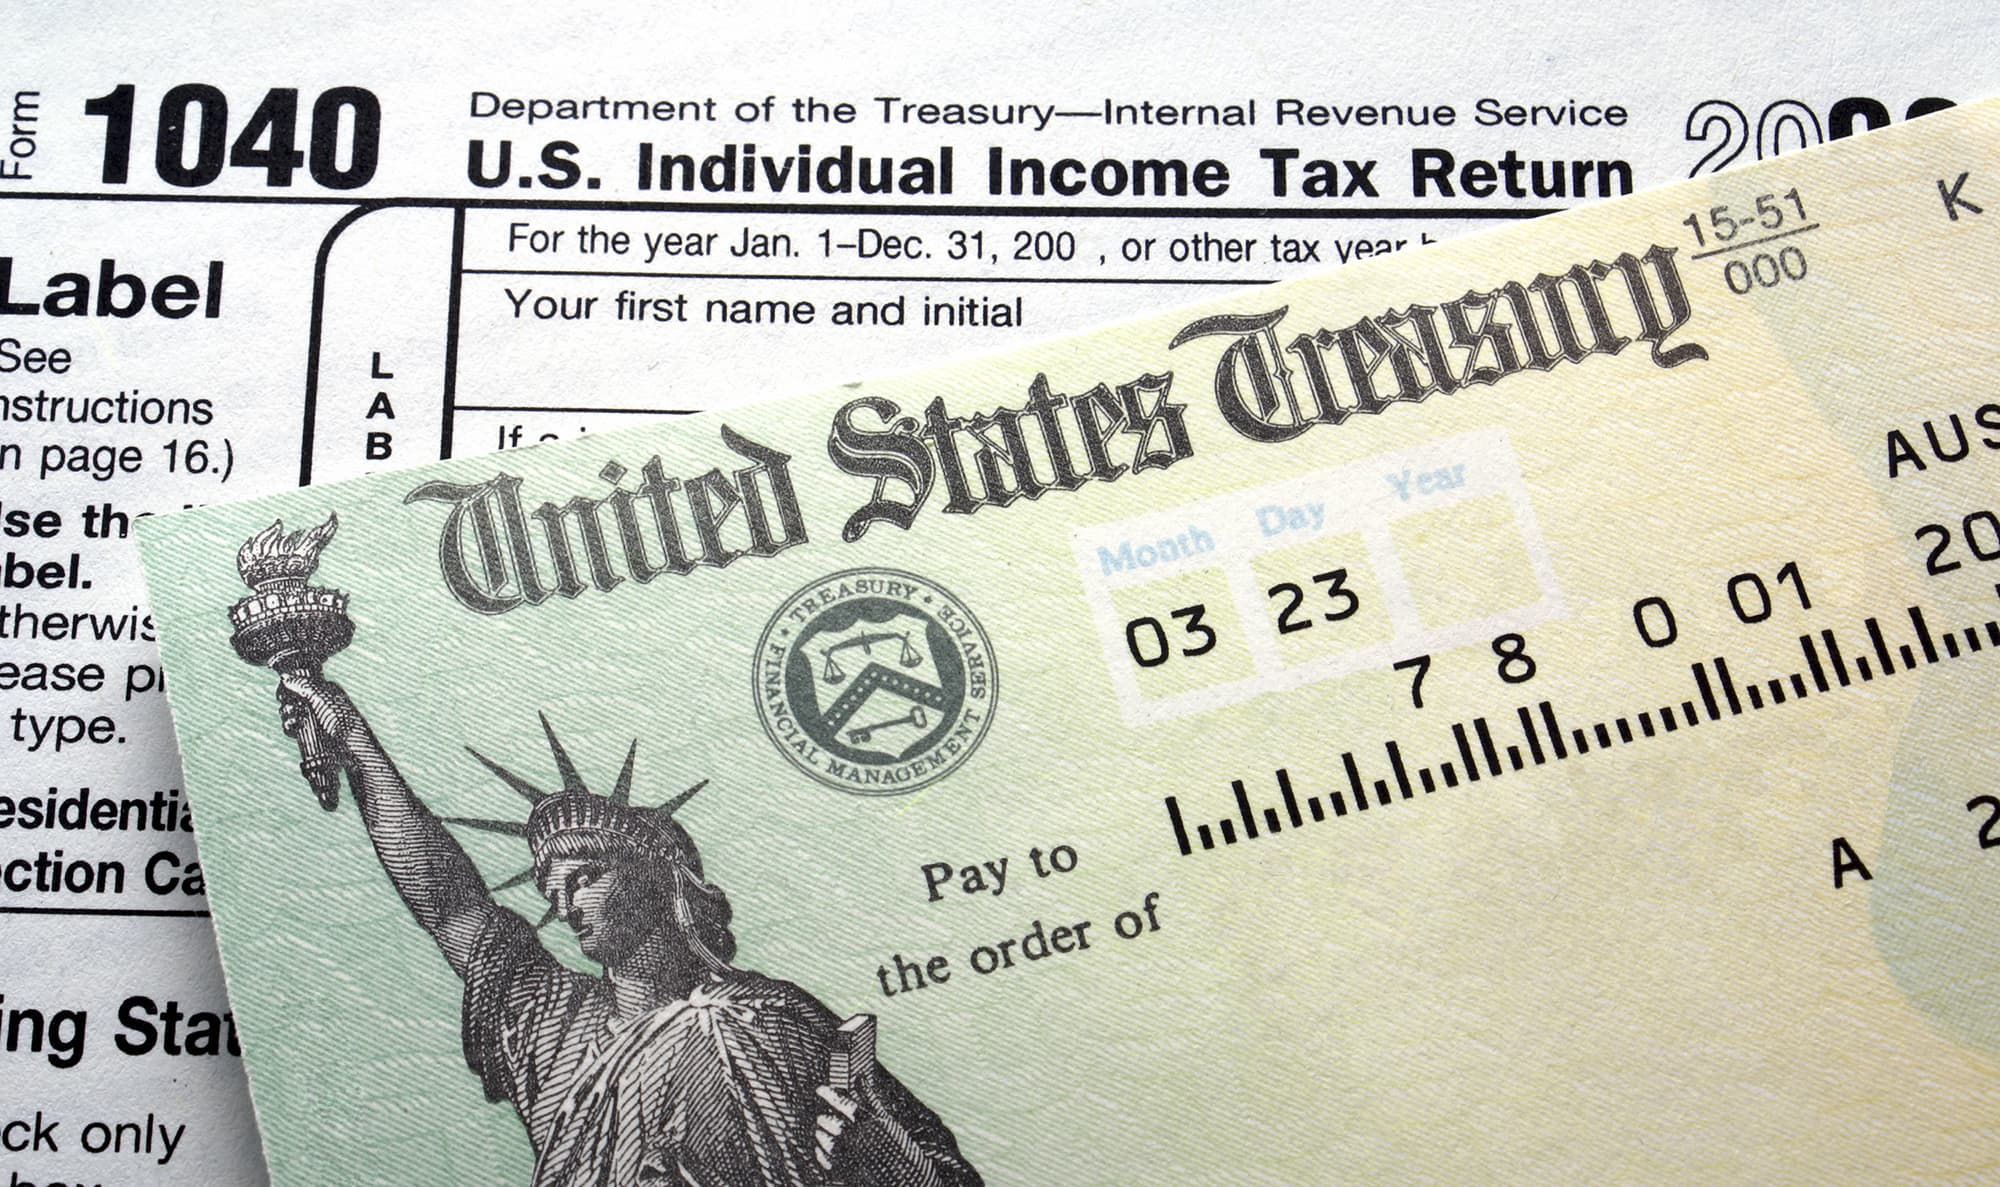 Don't blow your tax refund! Four ways to invest it wisely